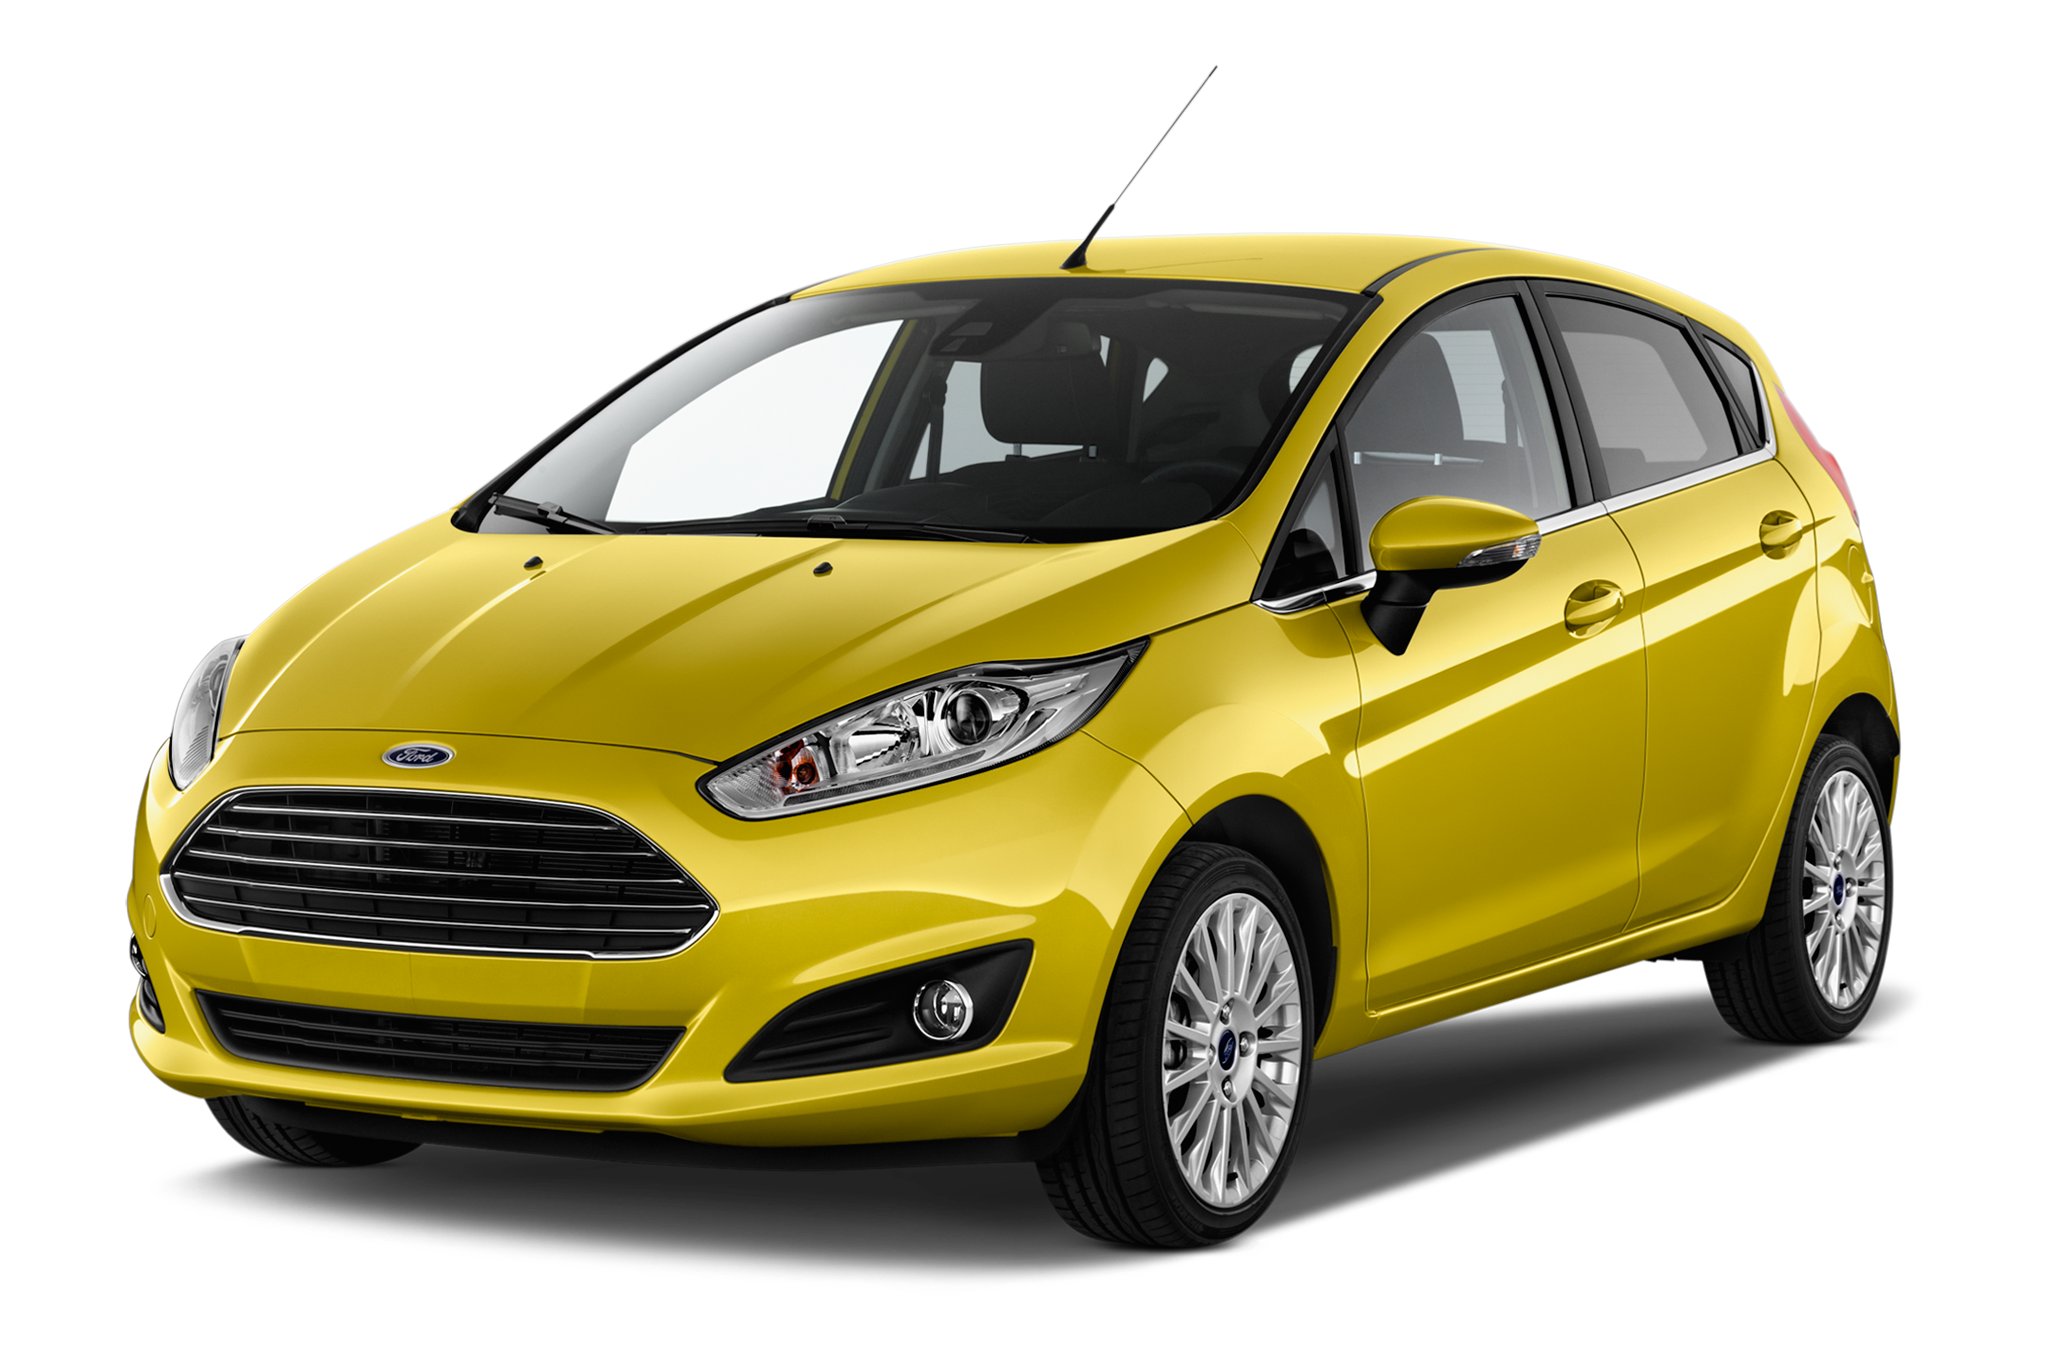 2015 Ford Fiesta And St Prices Reduced By 235 485 99 Bmw 328i Sedan Engine Diagram 31 104